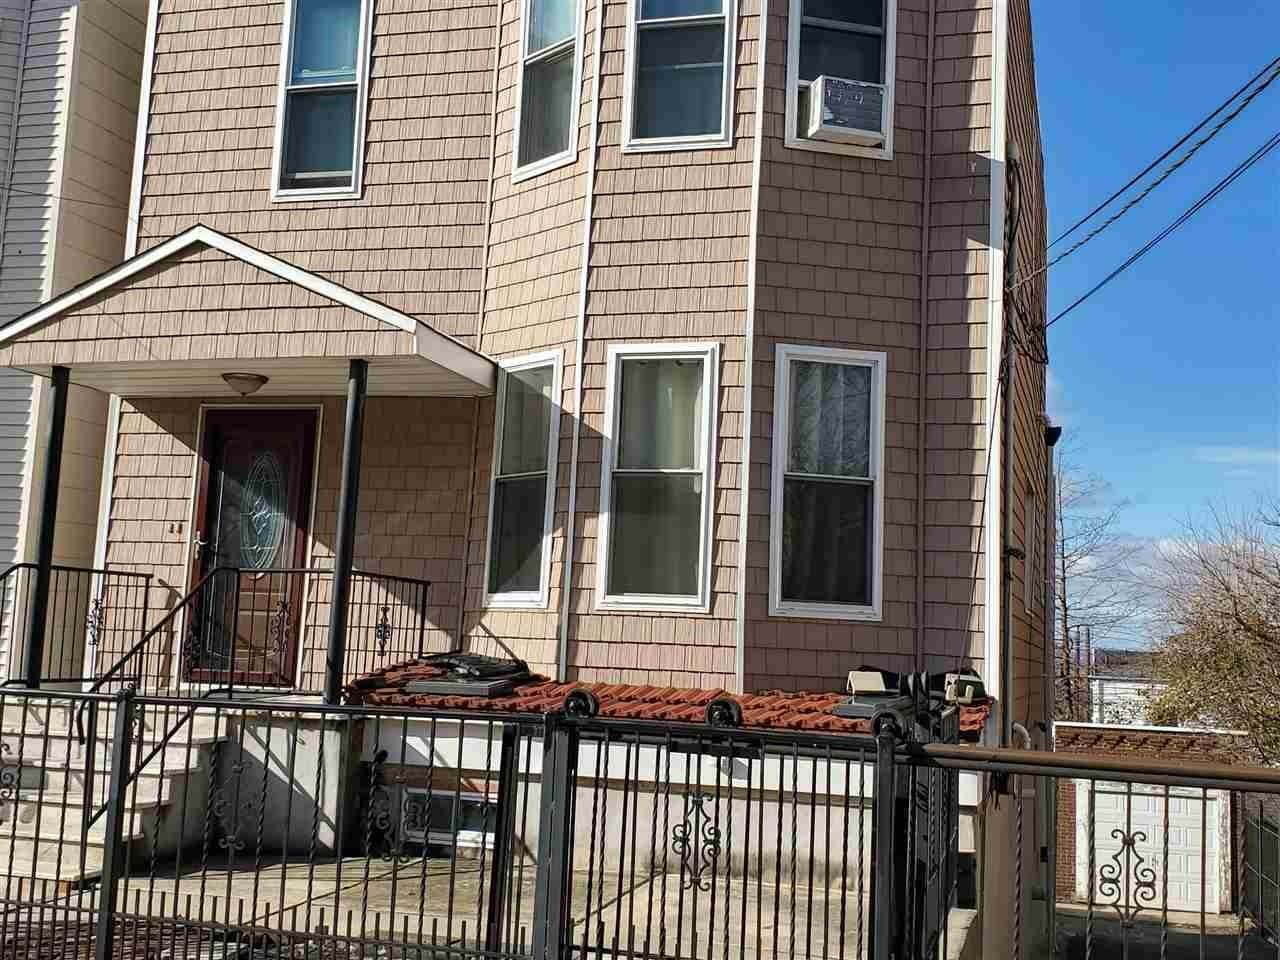 2. Single Family Home for Rent at 27 NELSON AVENUE #APT # Jersey City, New Jersey, 07307 United States